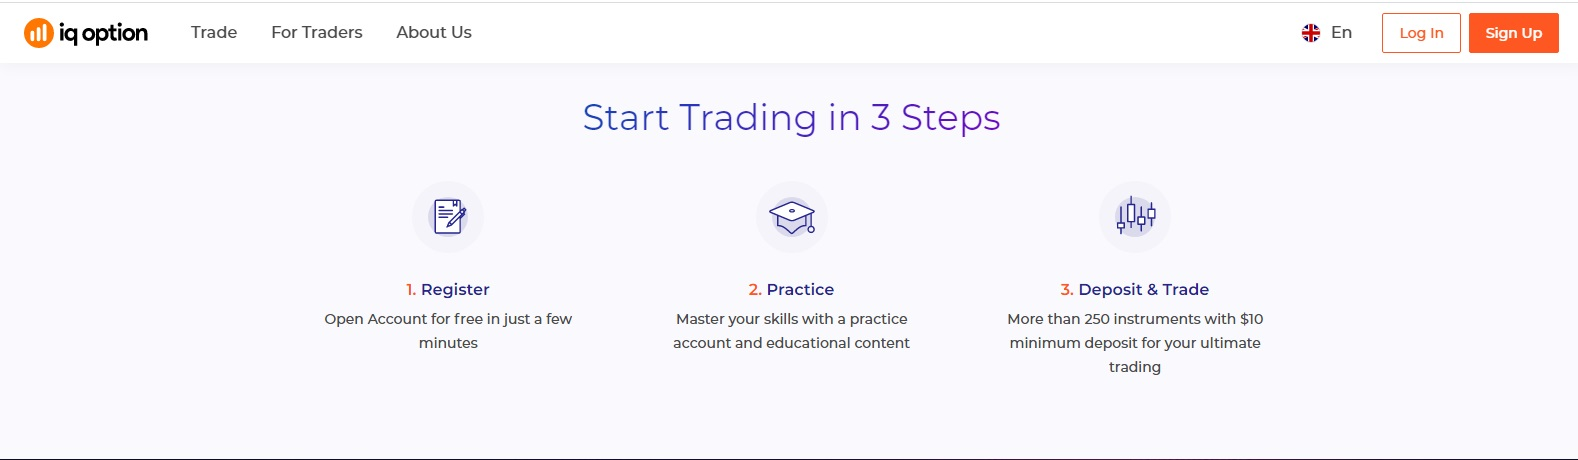 Review IQ Option – Trading Process